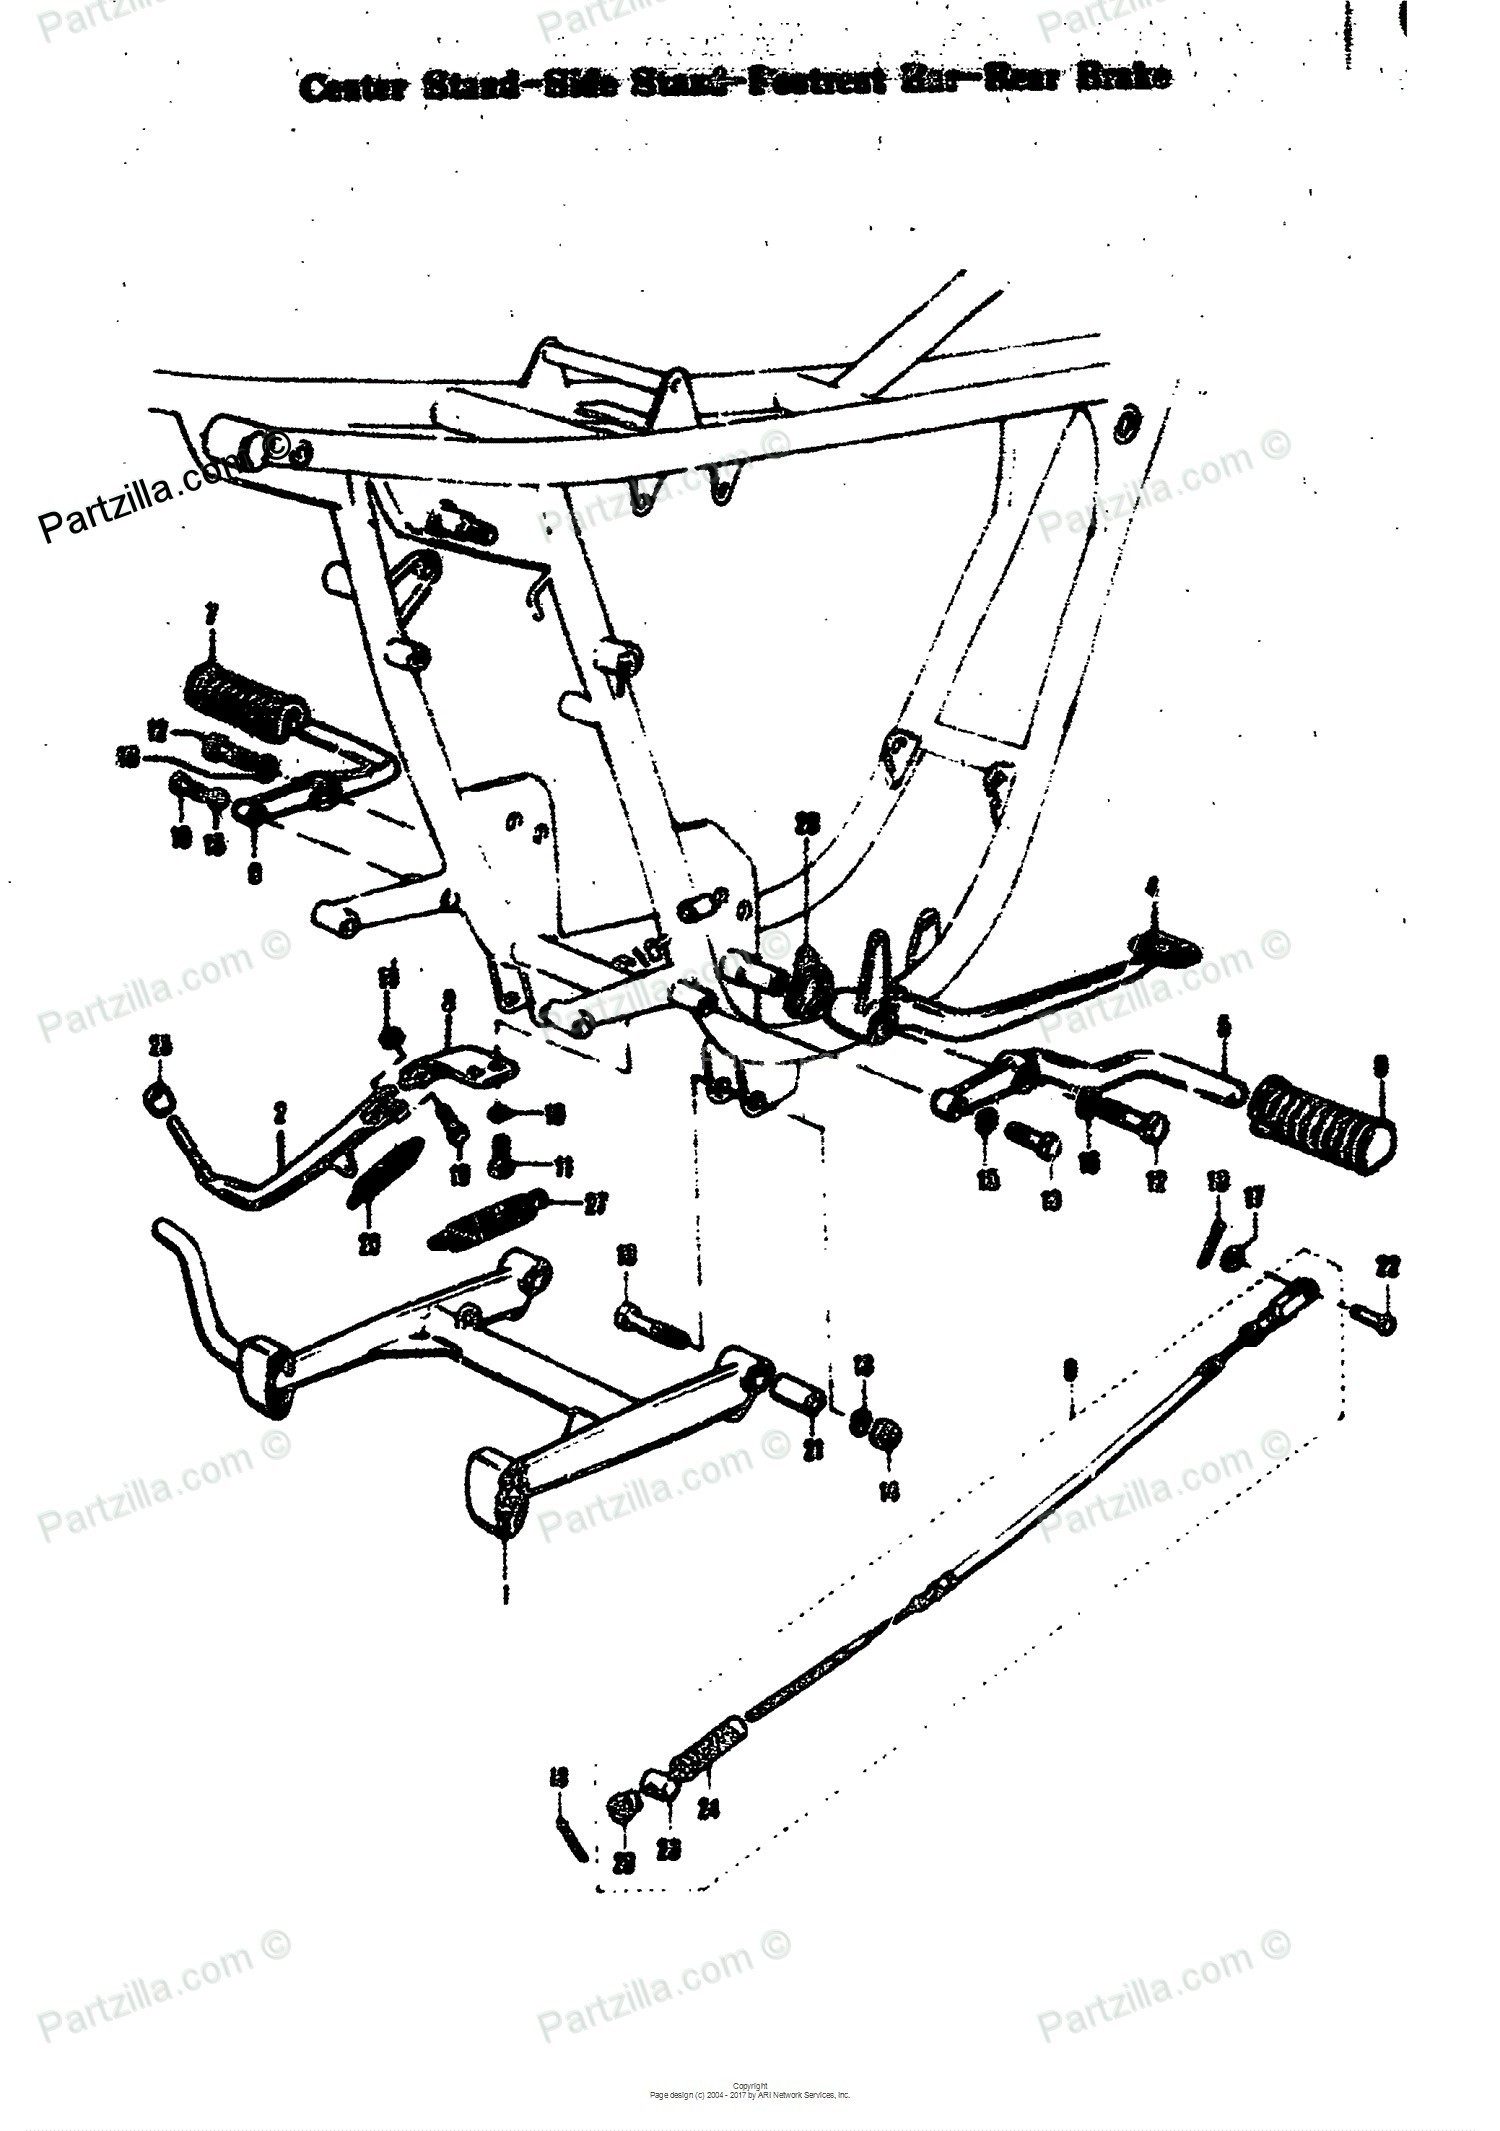 fuse box diagram together with 2002 ford taurus parts diagram